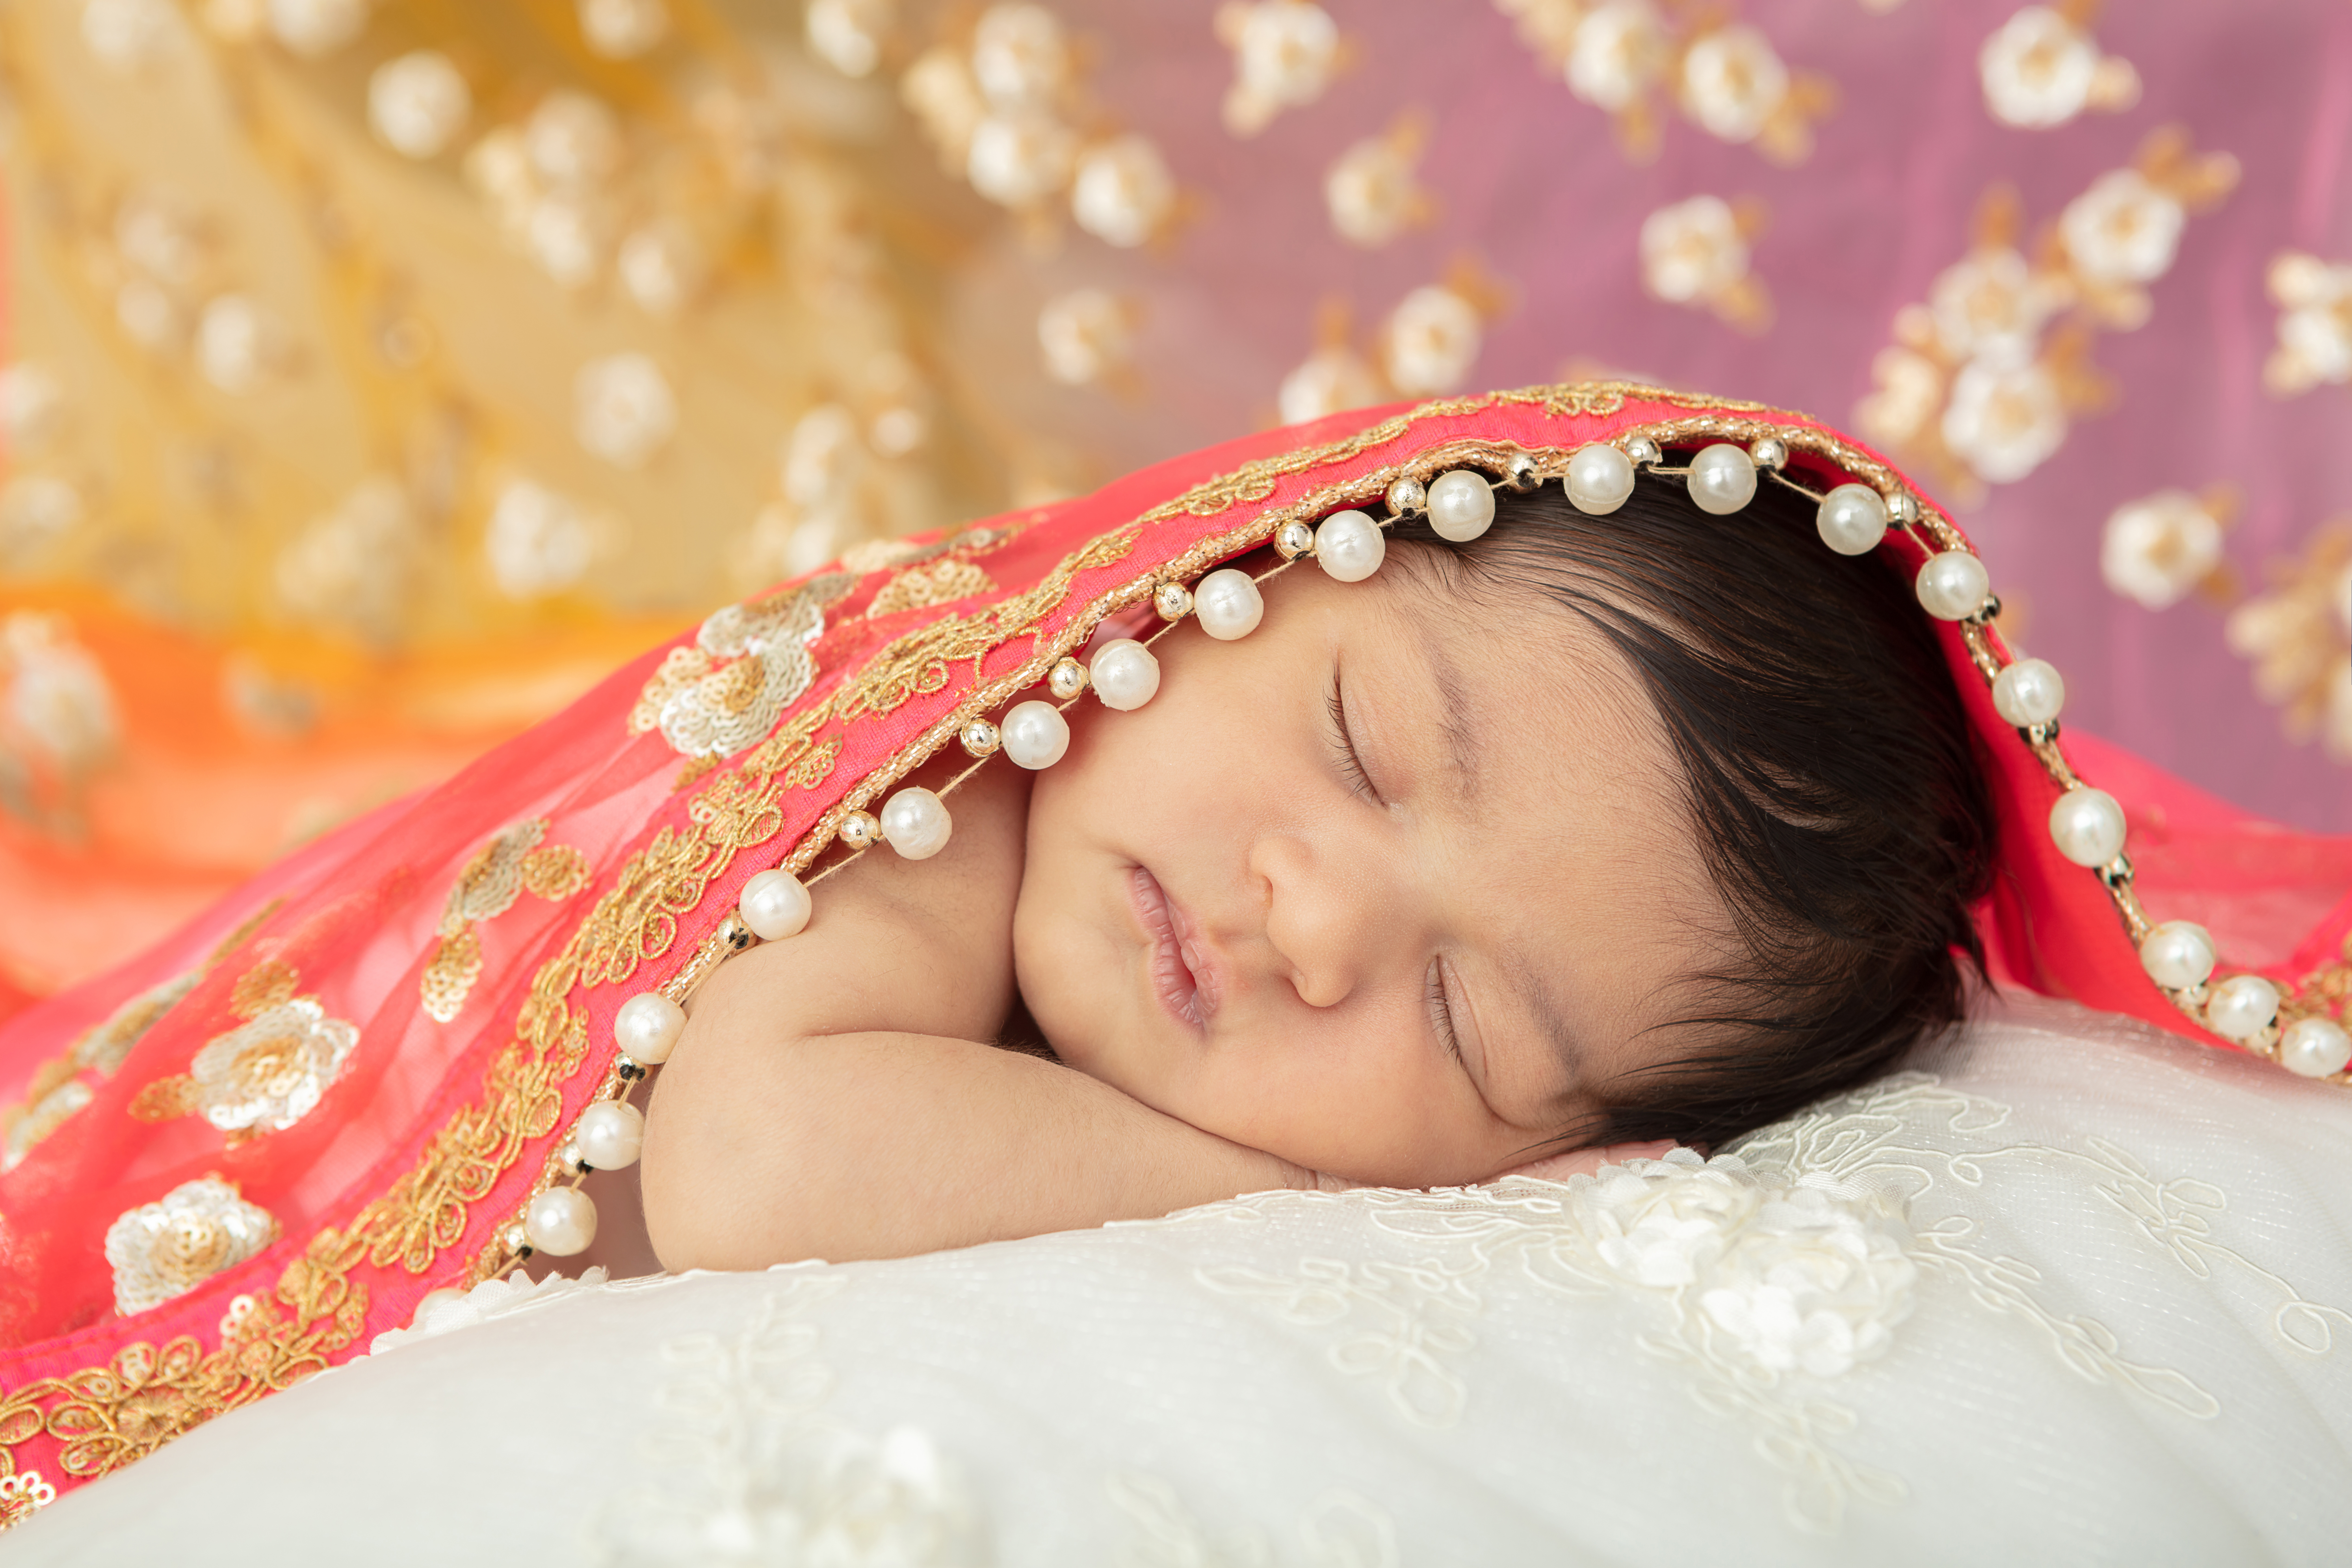 newborn Indian baby girl resting on a textured cream colored blanket, draped in her mother's sari